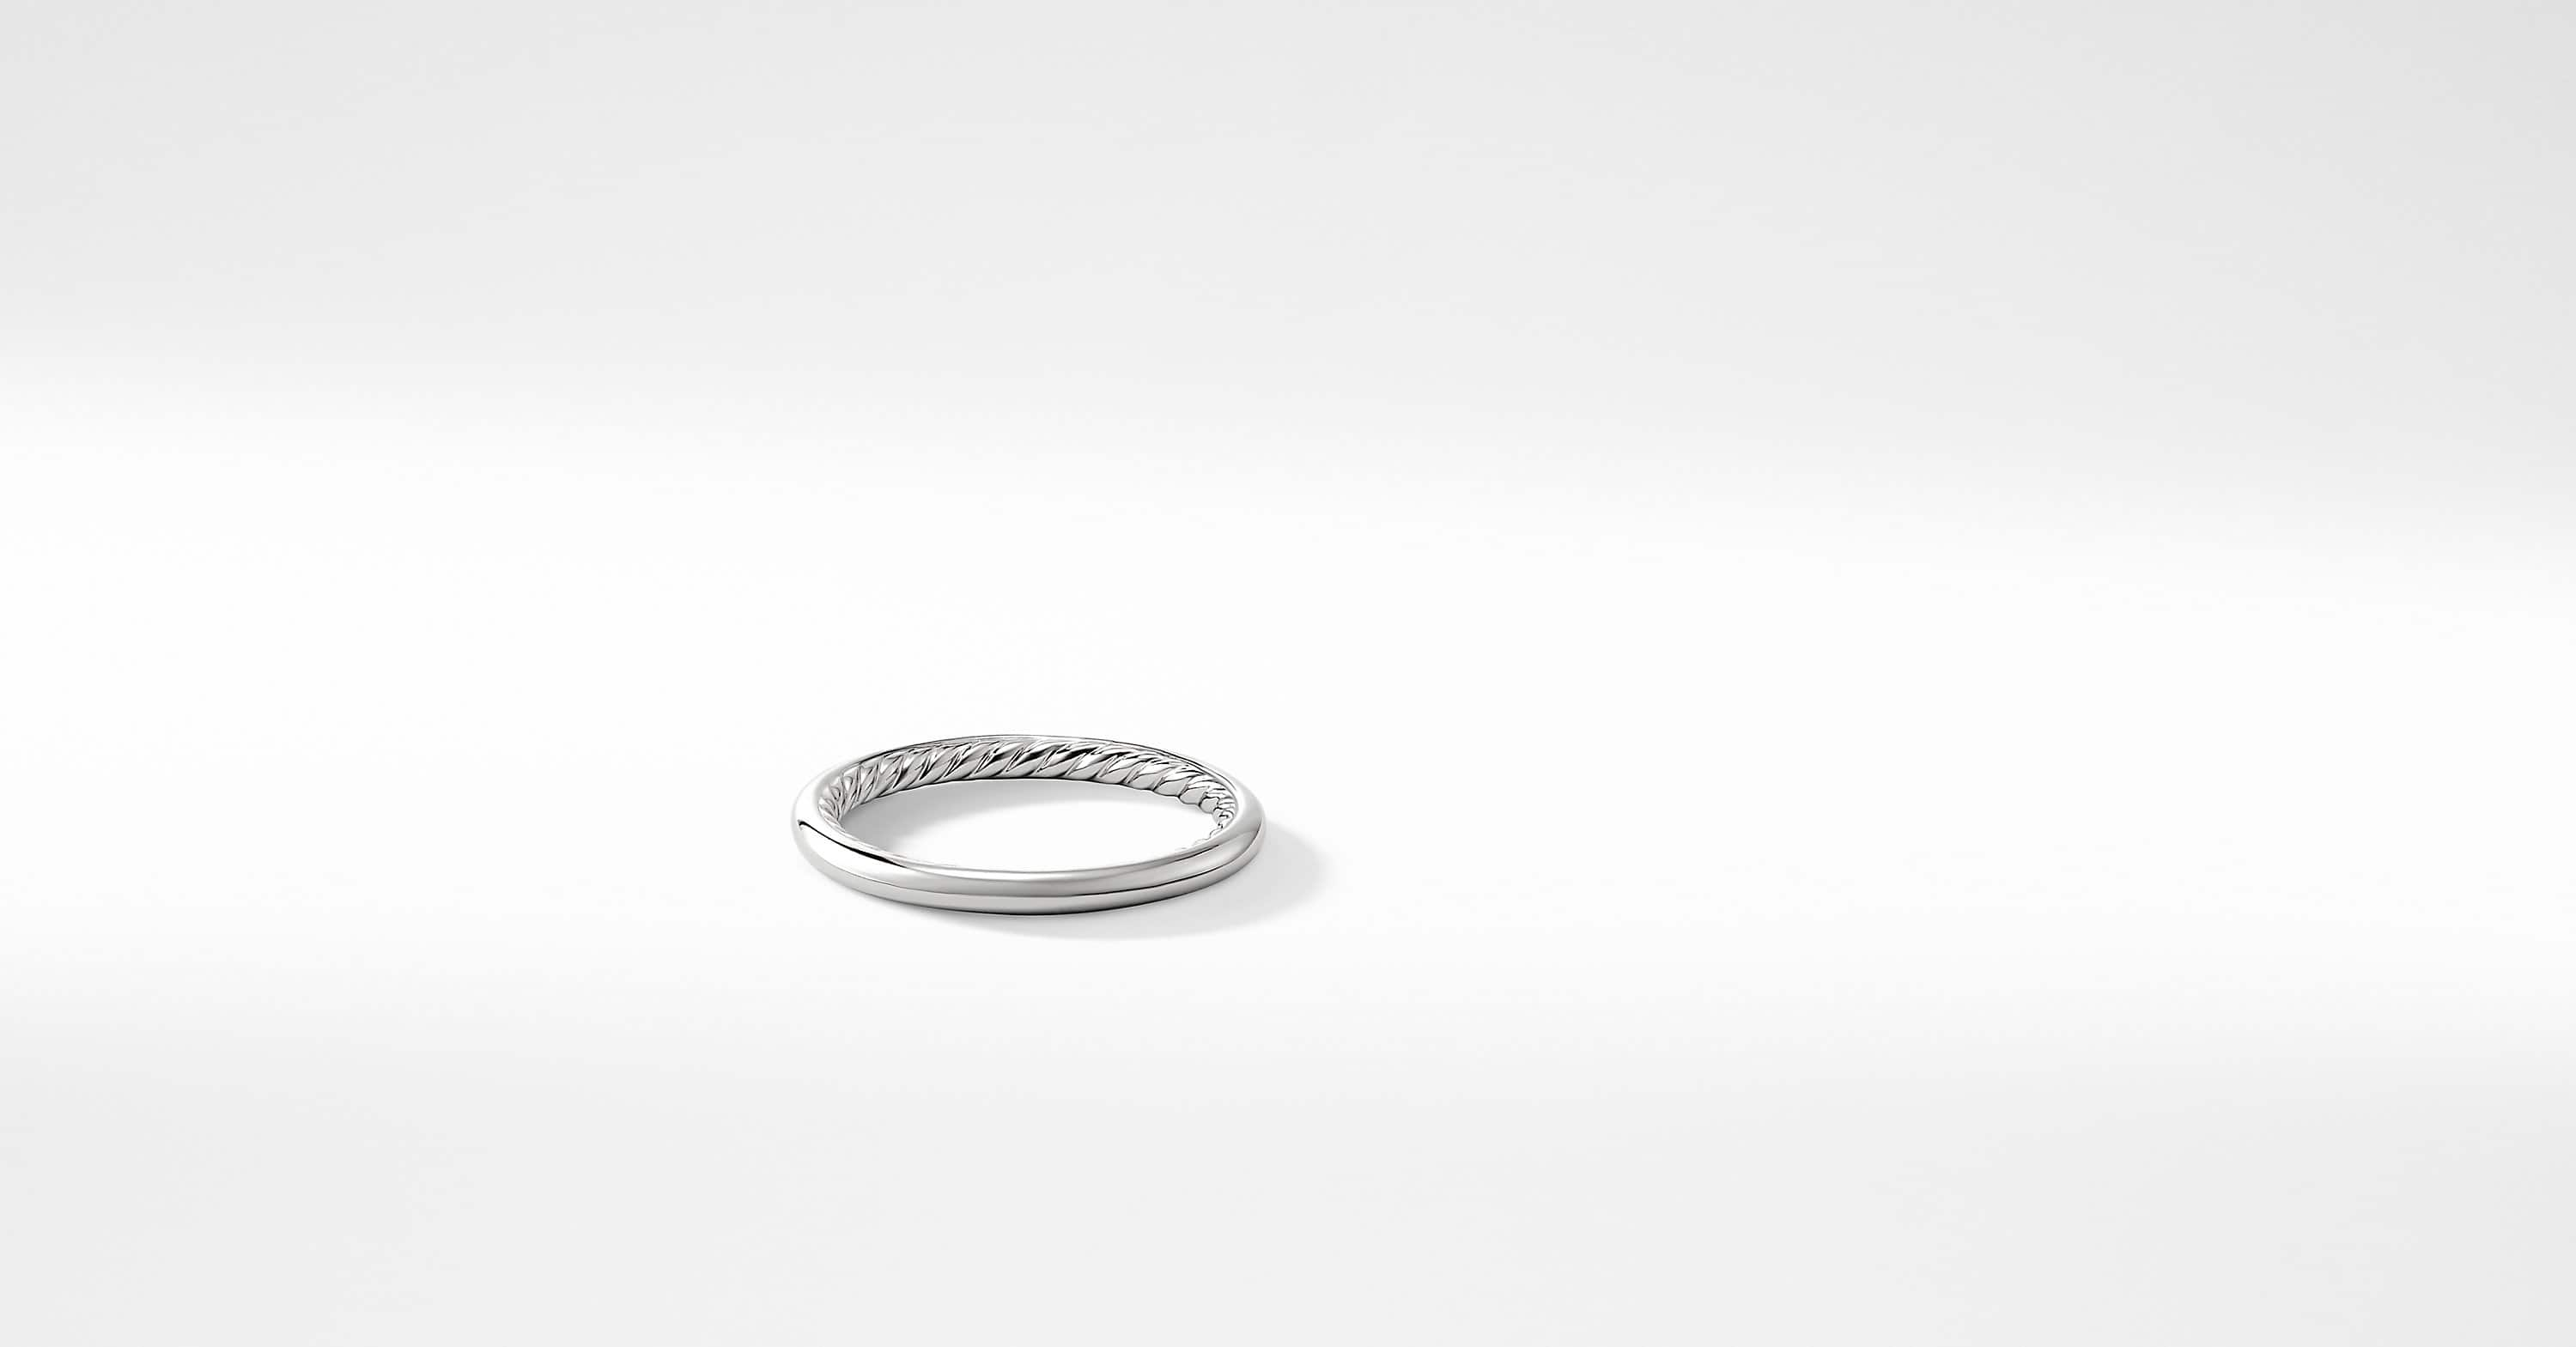 DY Eden Wedding Band in Platinum, 2mm